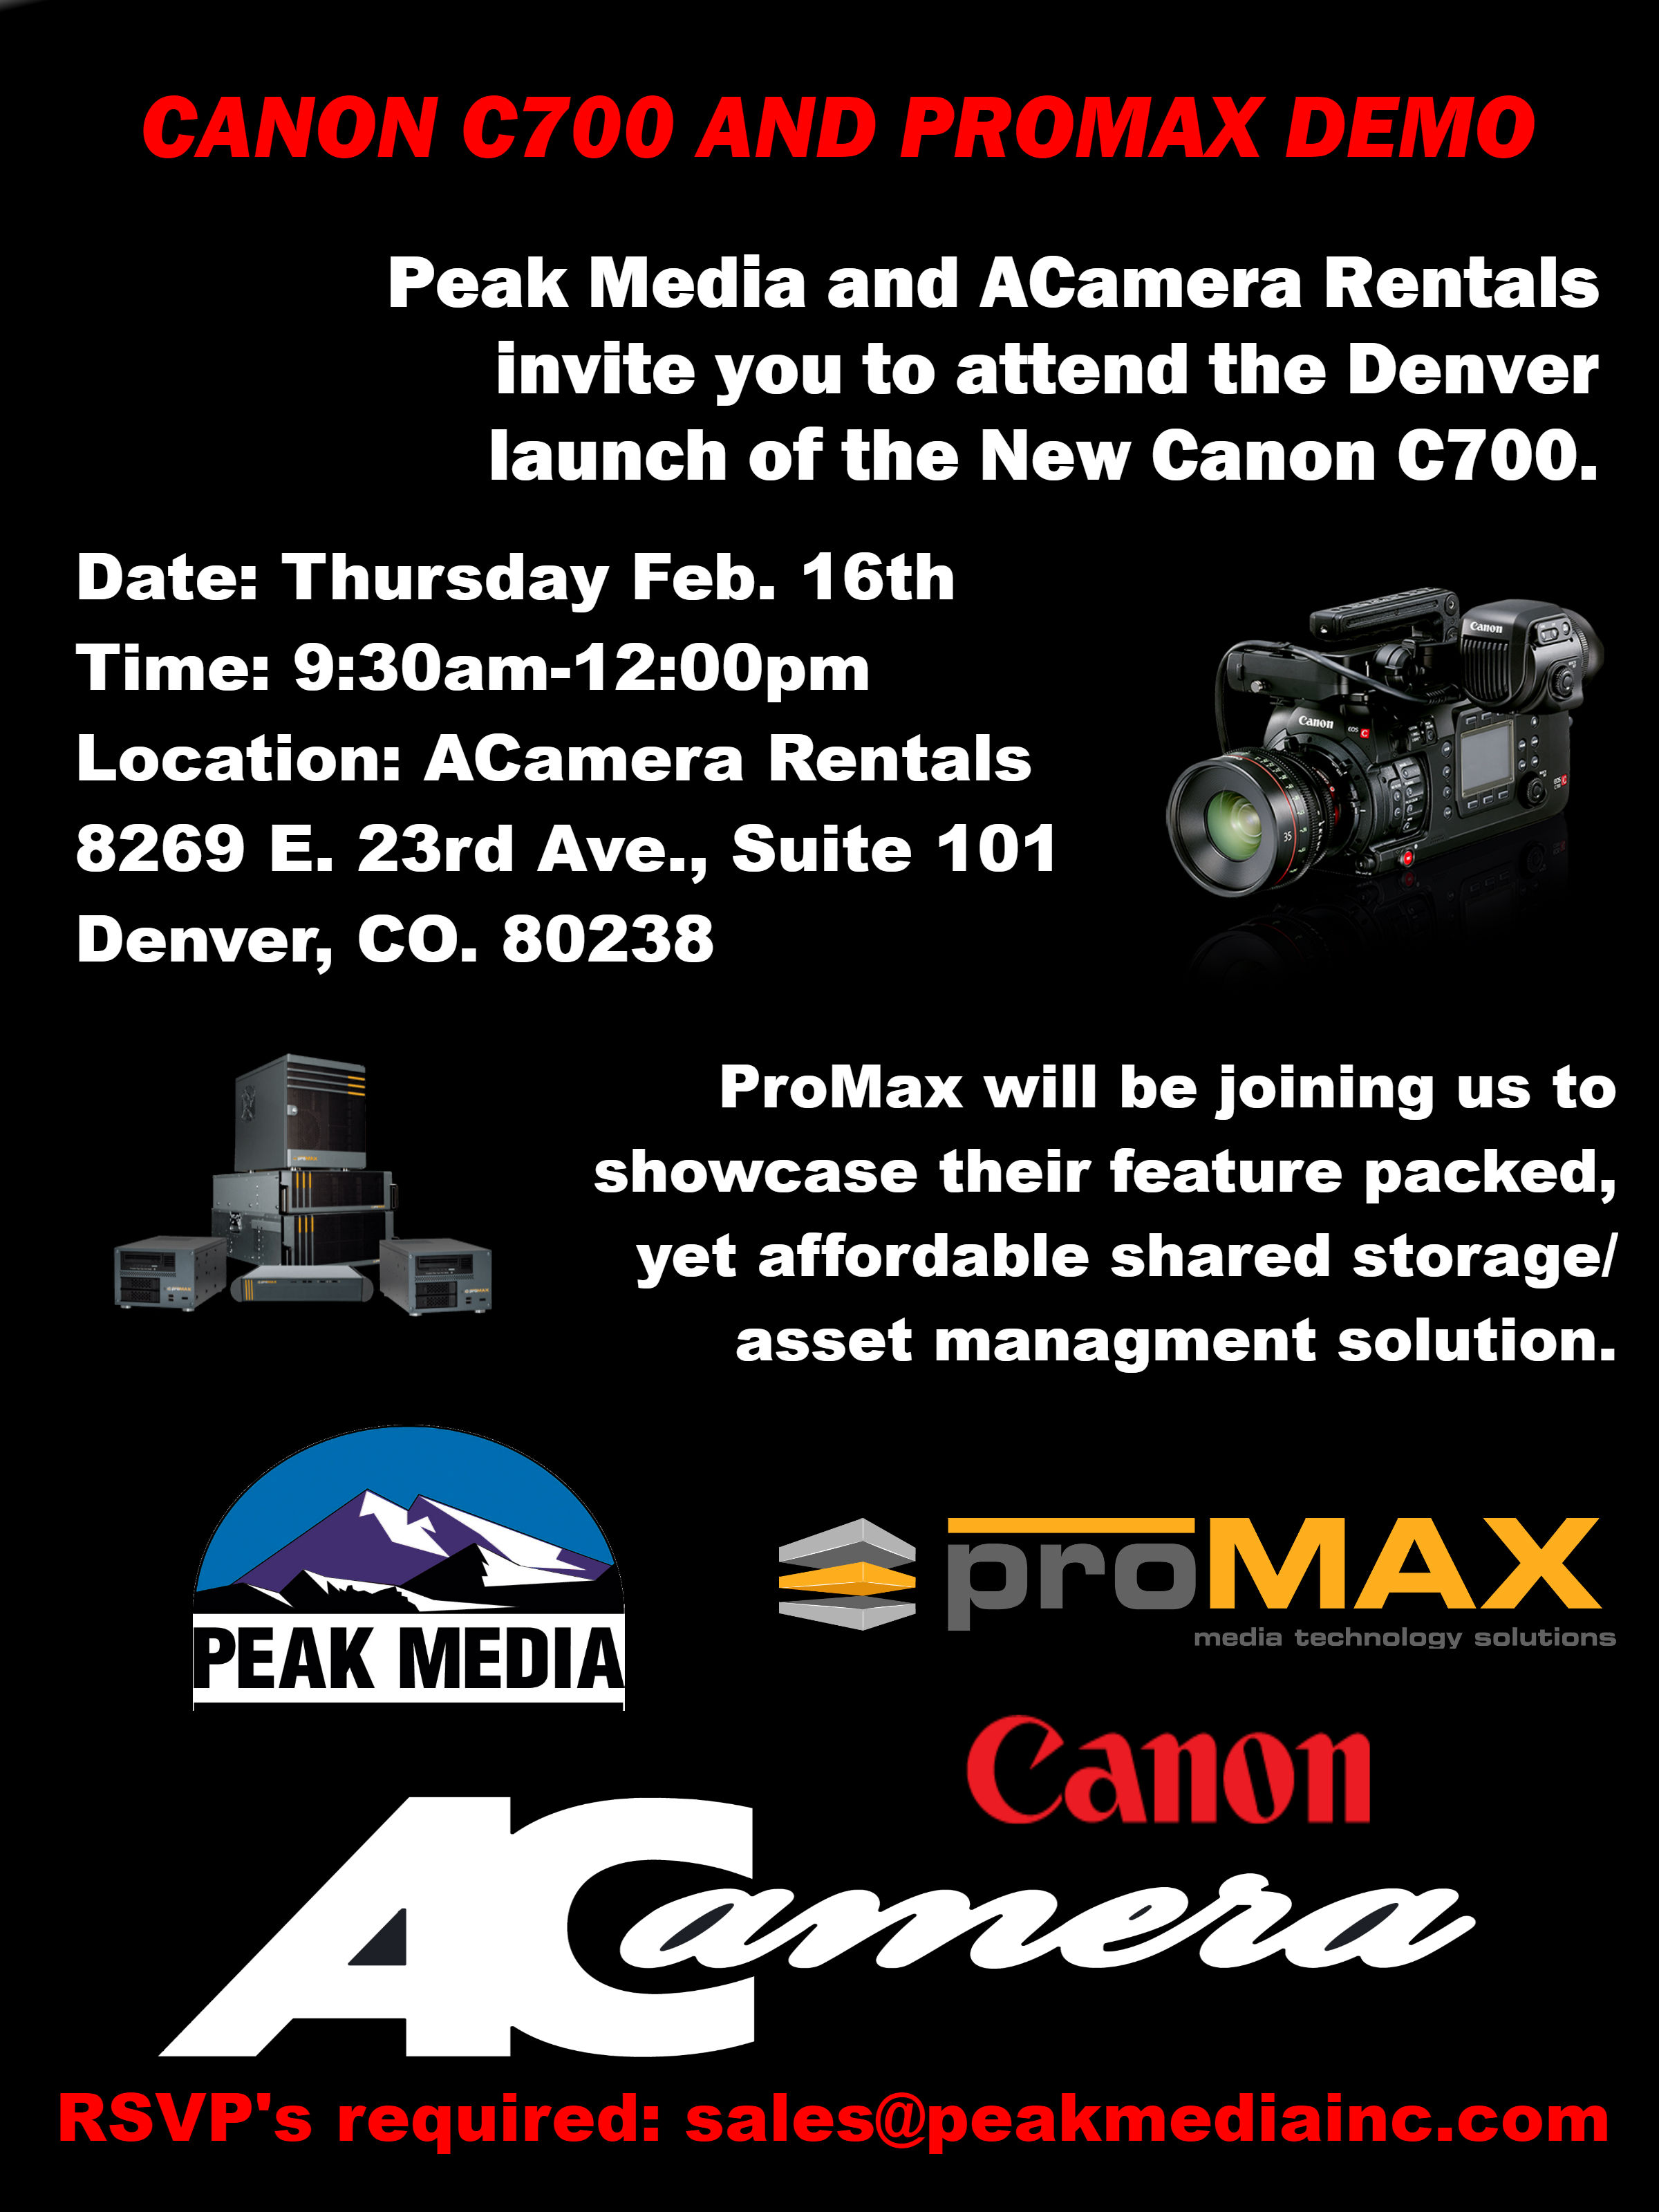 Canon C700 and ProMax Demo Event!